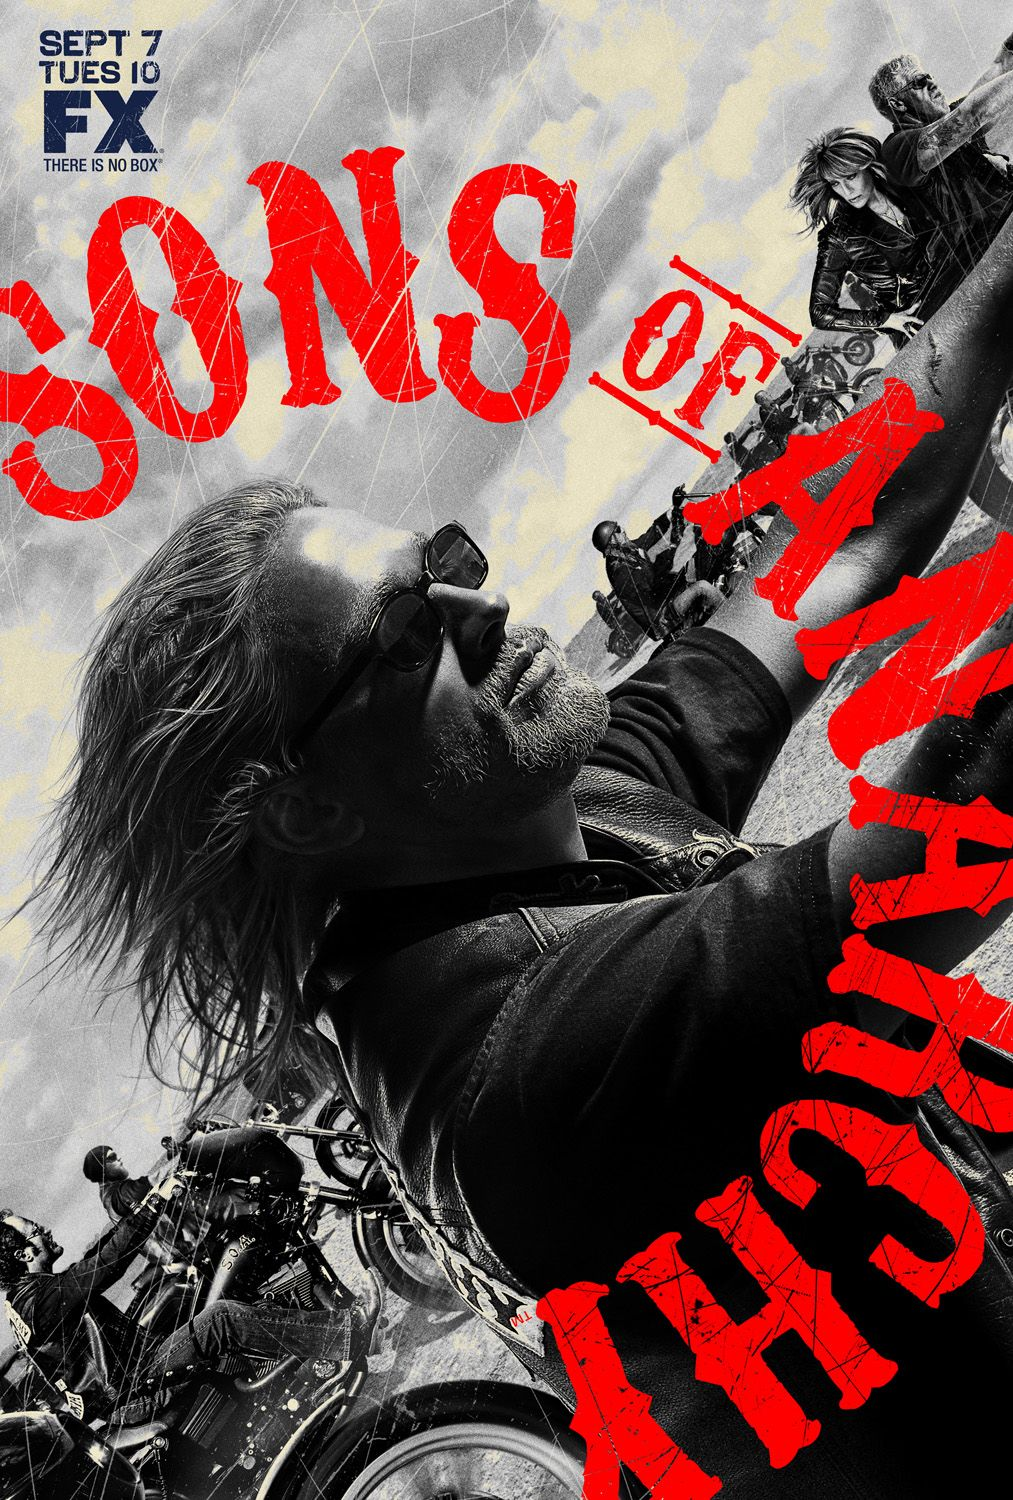 Season 4 Sons Of Anarchy Full Episodes Online Free